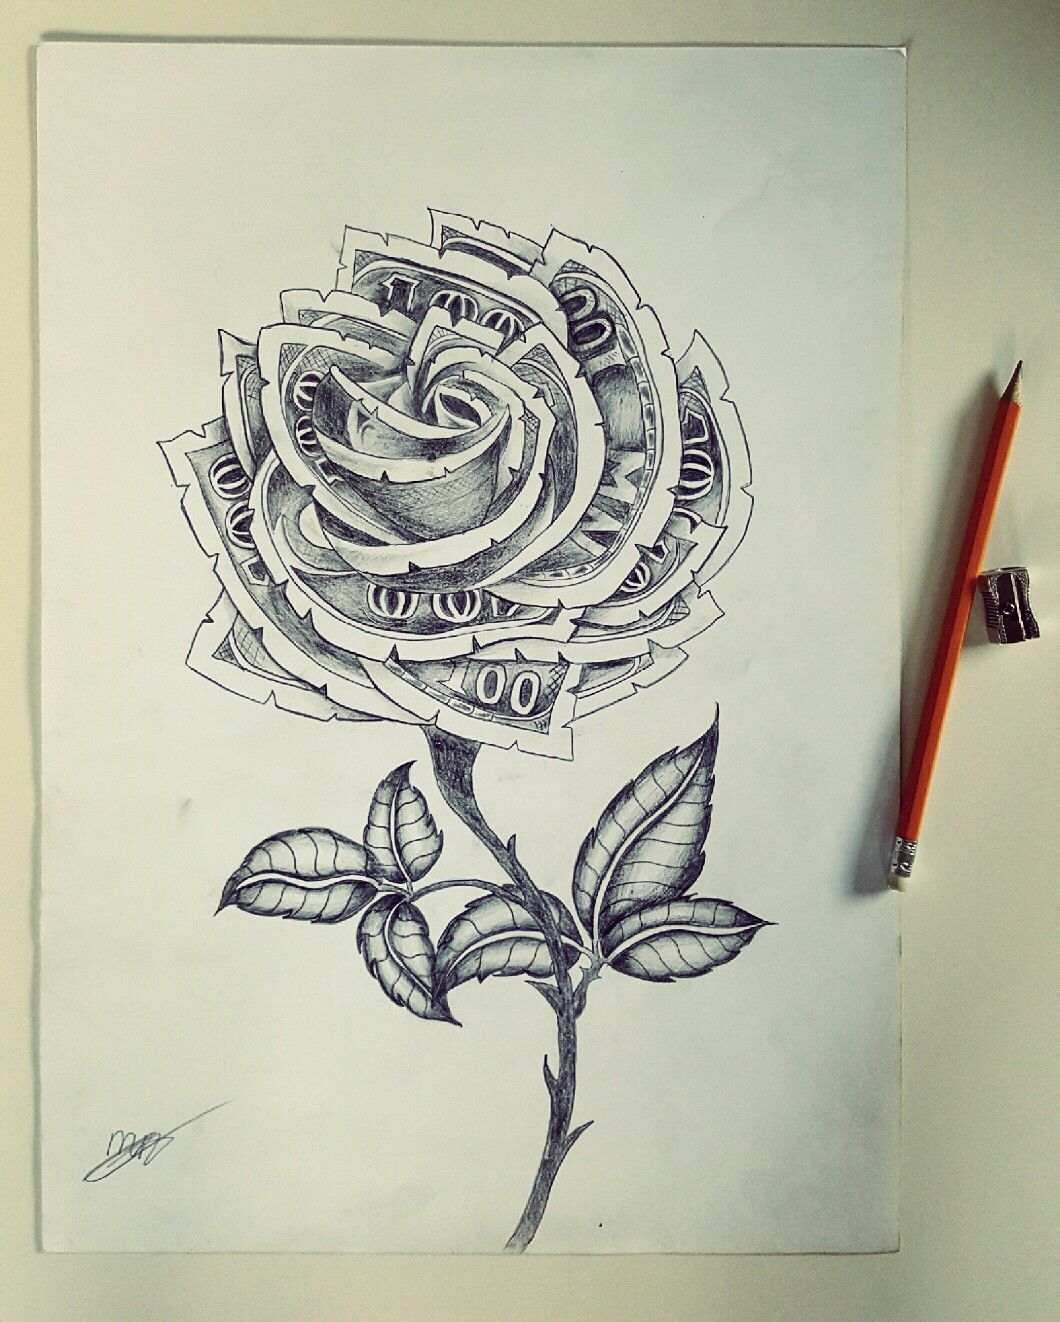 100 Dollar Rose Drawing My Self Made Art In 2019 Ideas And Designs